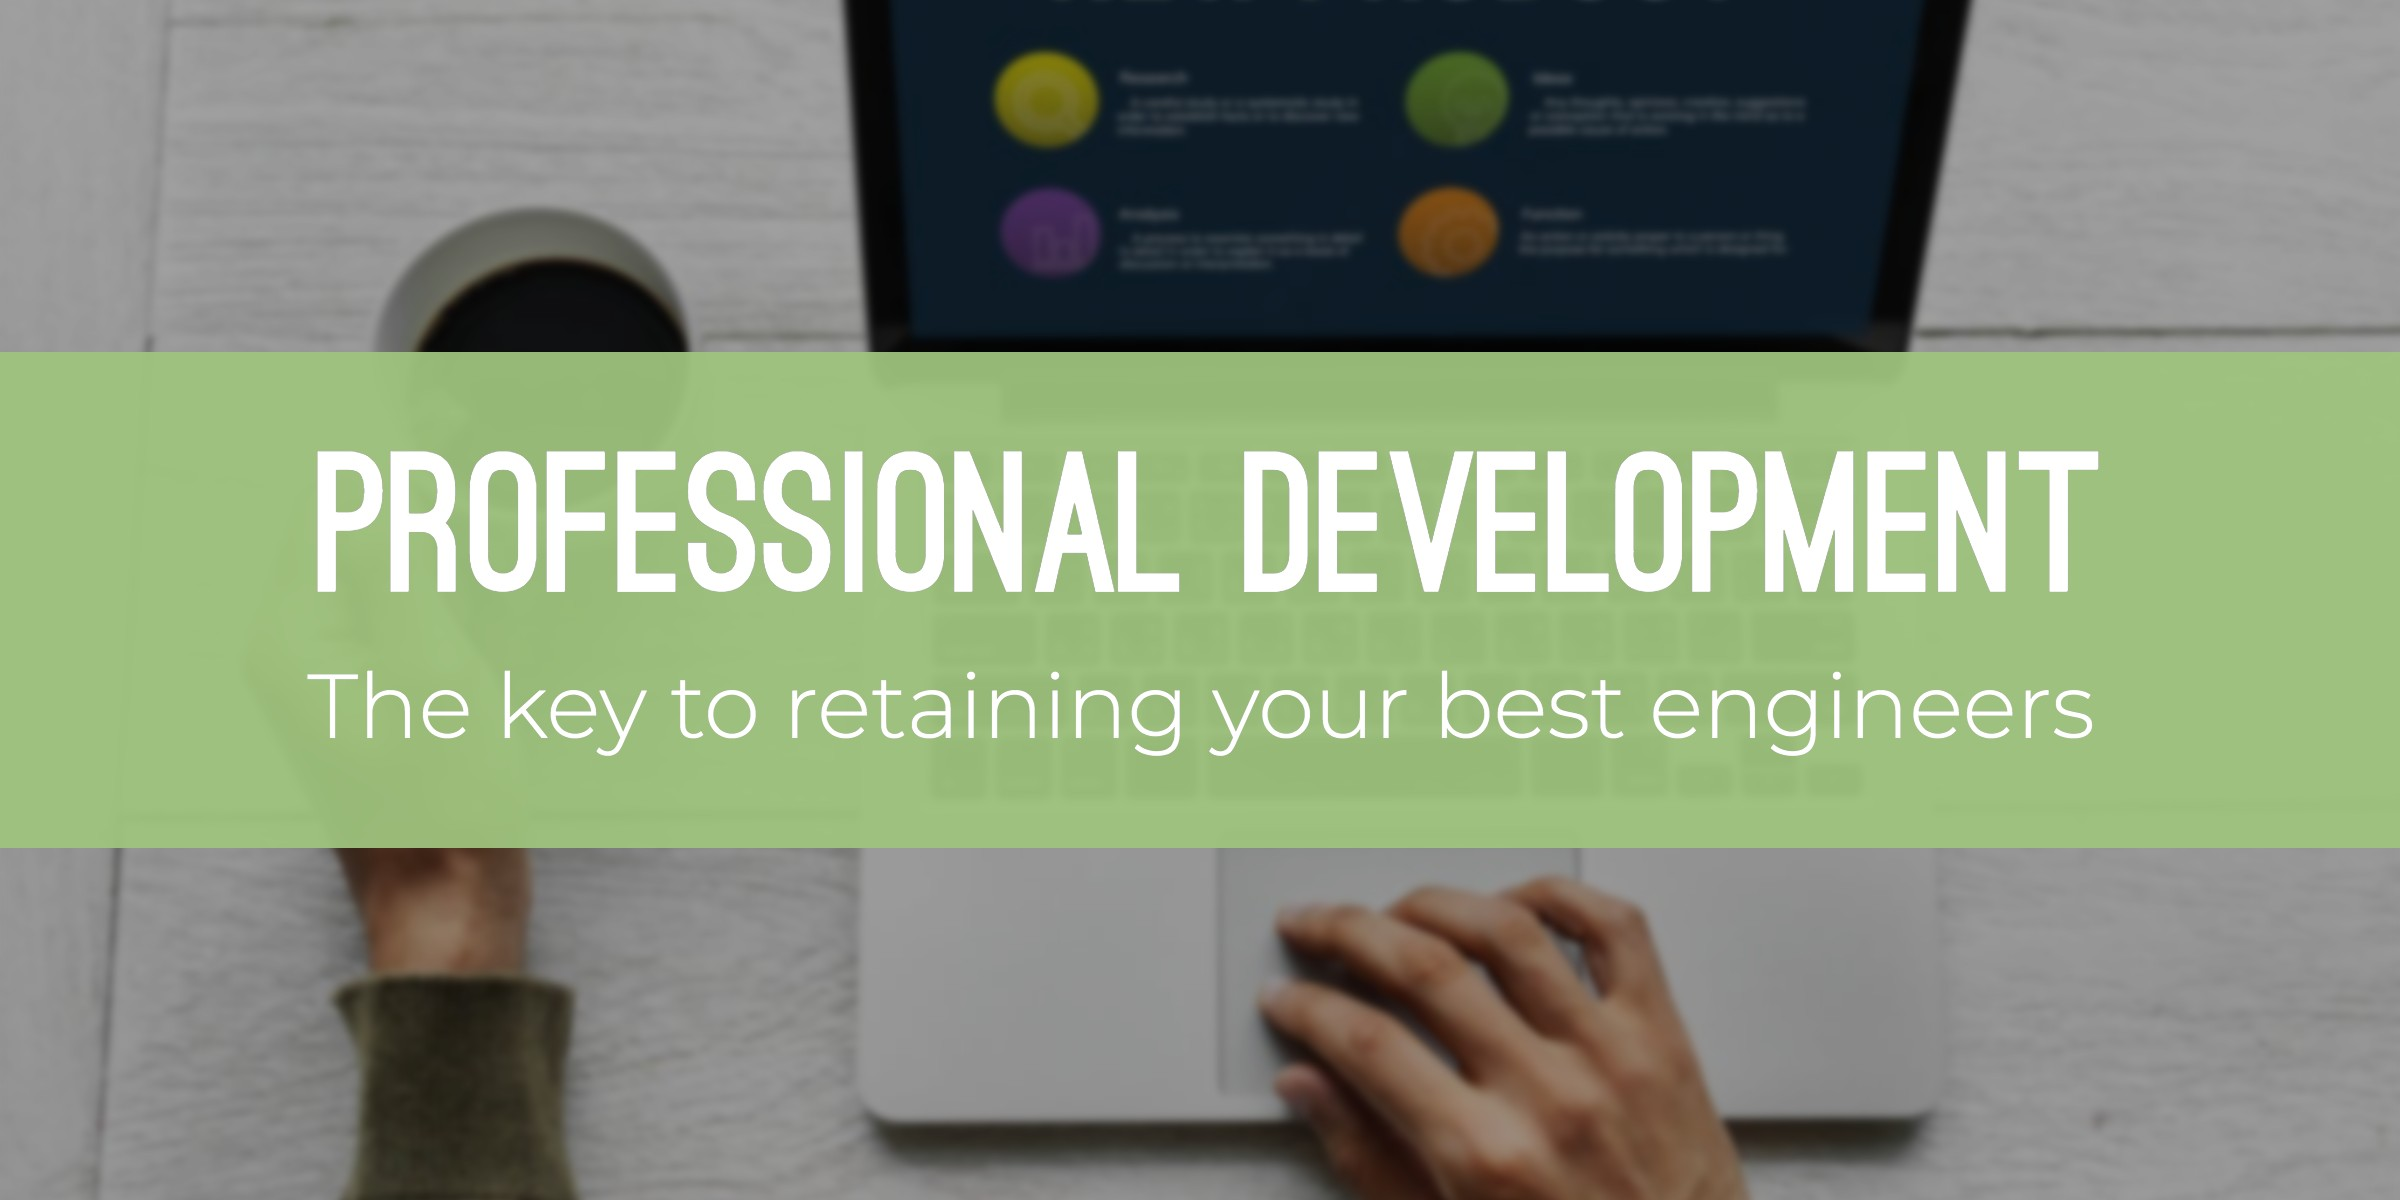 professional-development-retain-engineers